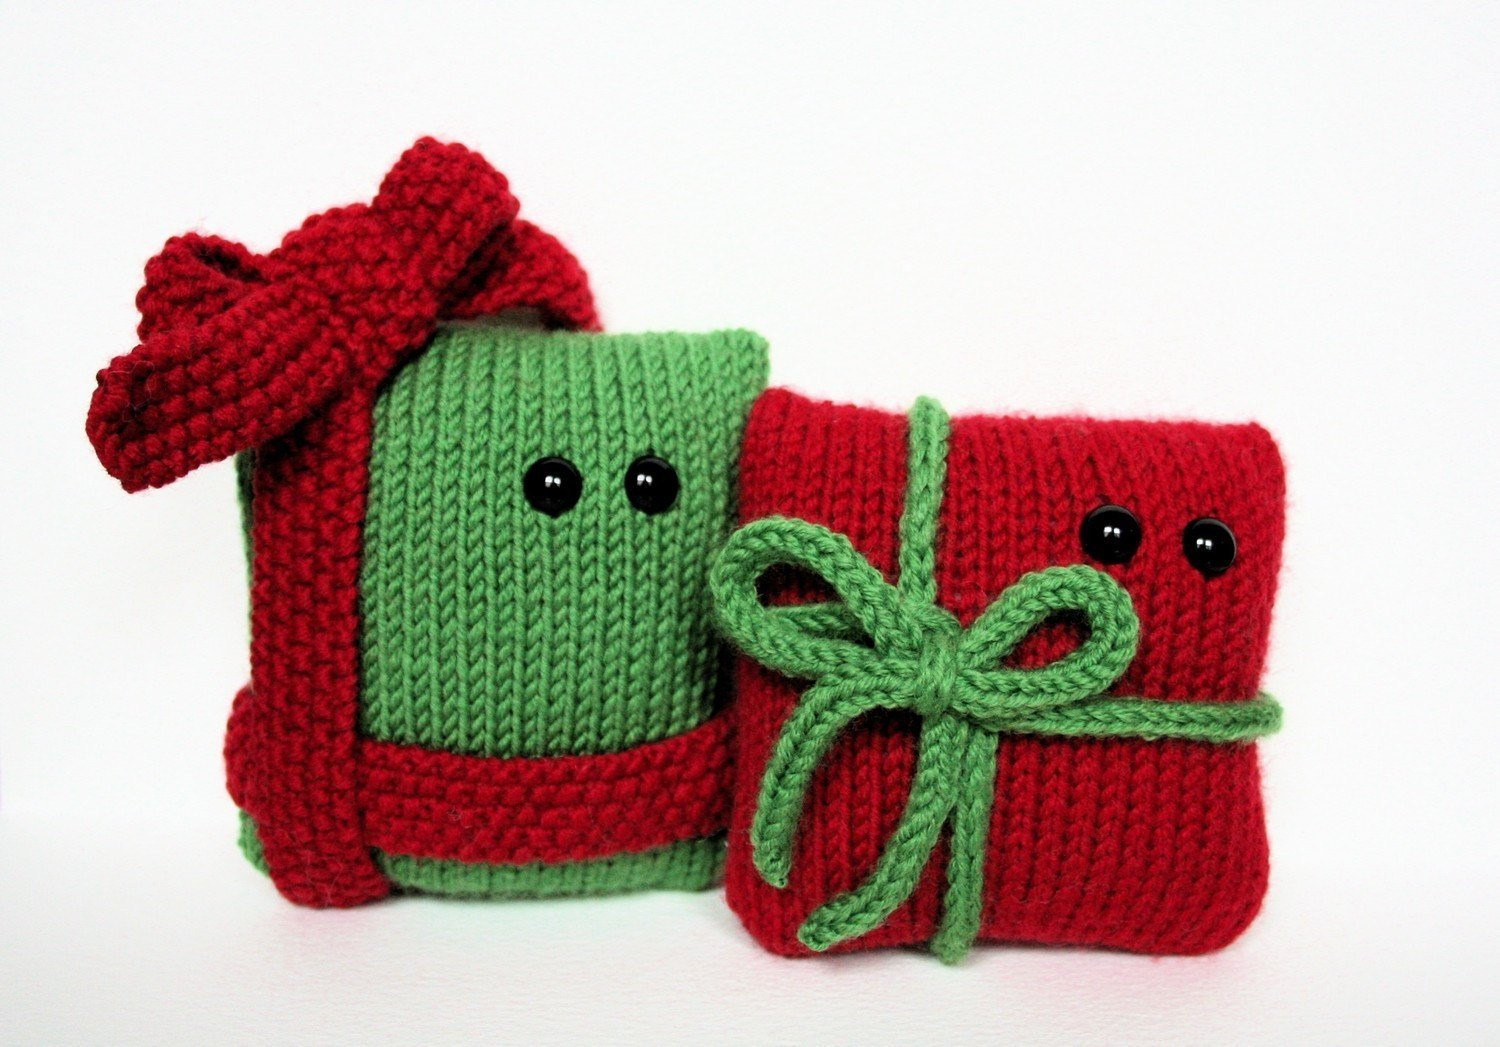 Christmas Knitting Elegant Knit Your Own Amigurumi Christmas Presents Pdf Knitting Of Attractive 41 Models Christmas Knitting